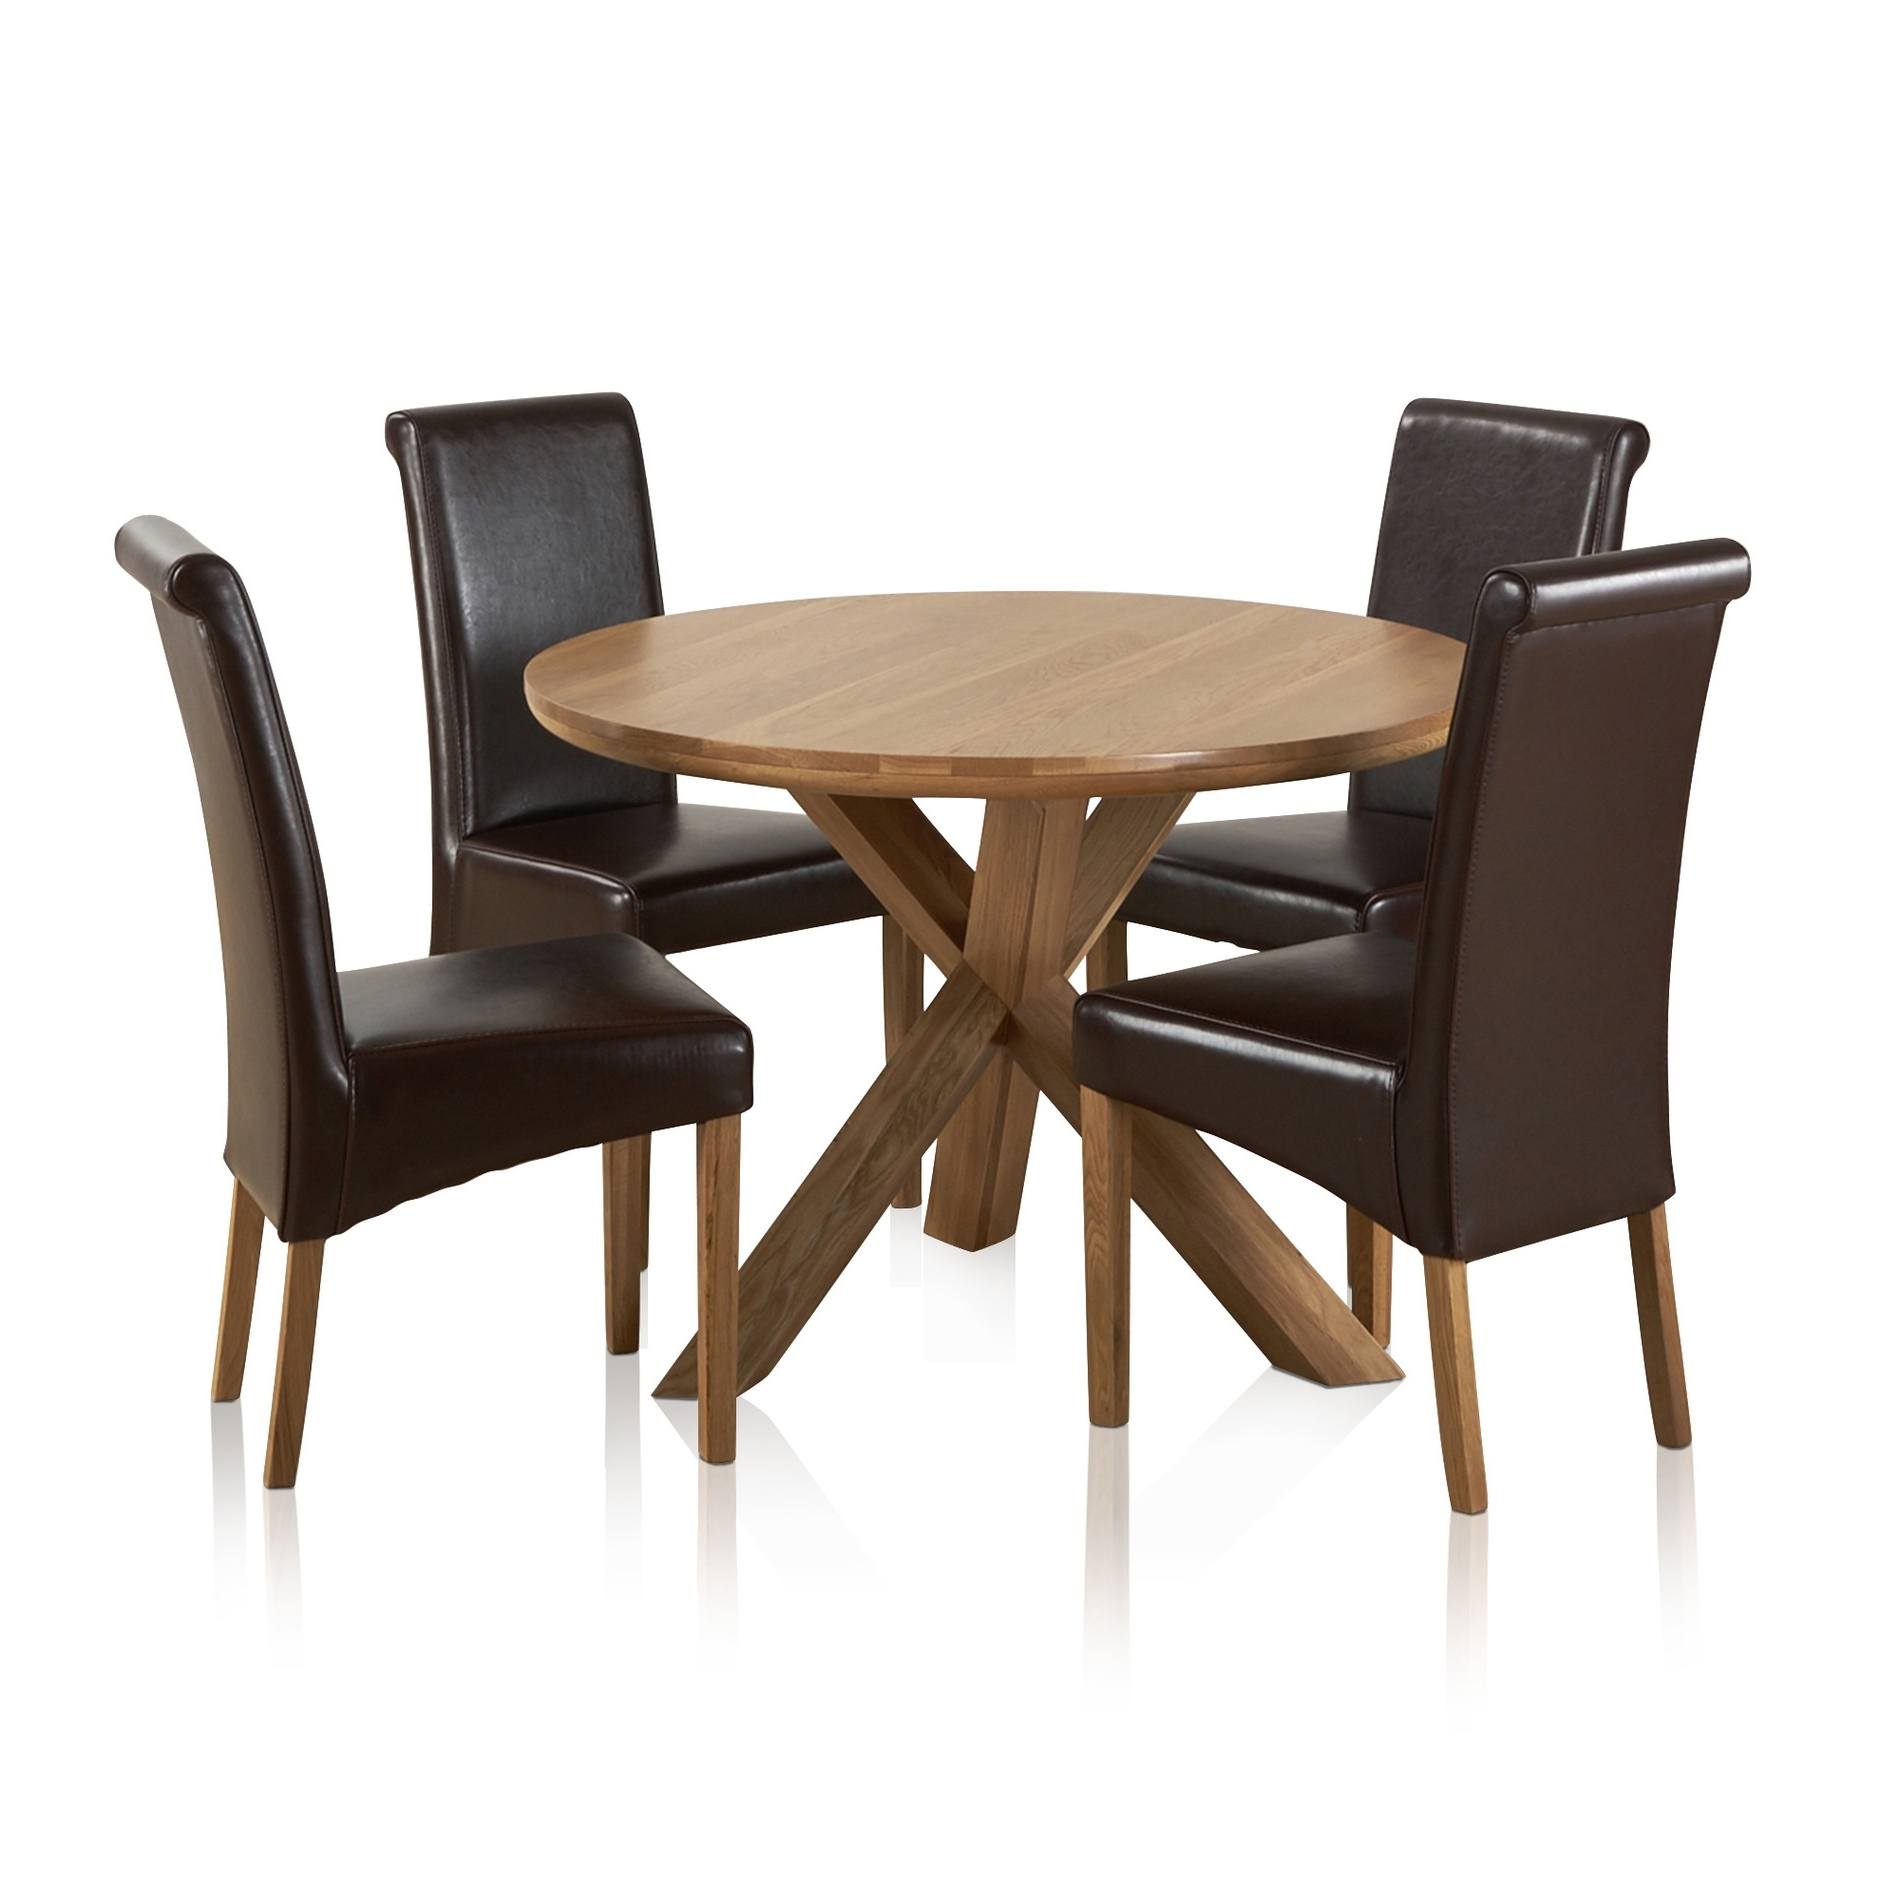 Cheap Oak Dining Sets Intended For Recent Natural Real Oak Dining Set: Round Table + 4 Brown Leather Chairs (View 21 of 25)